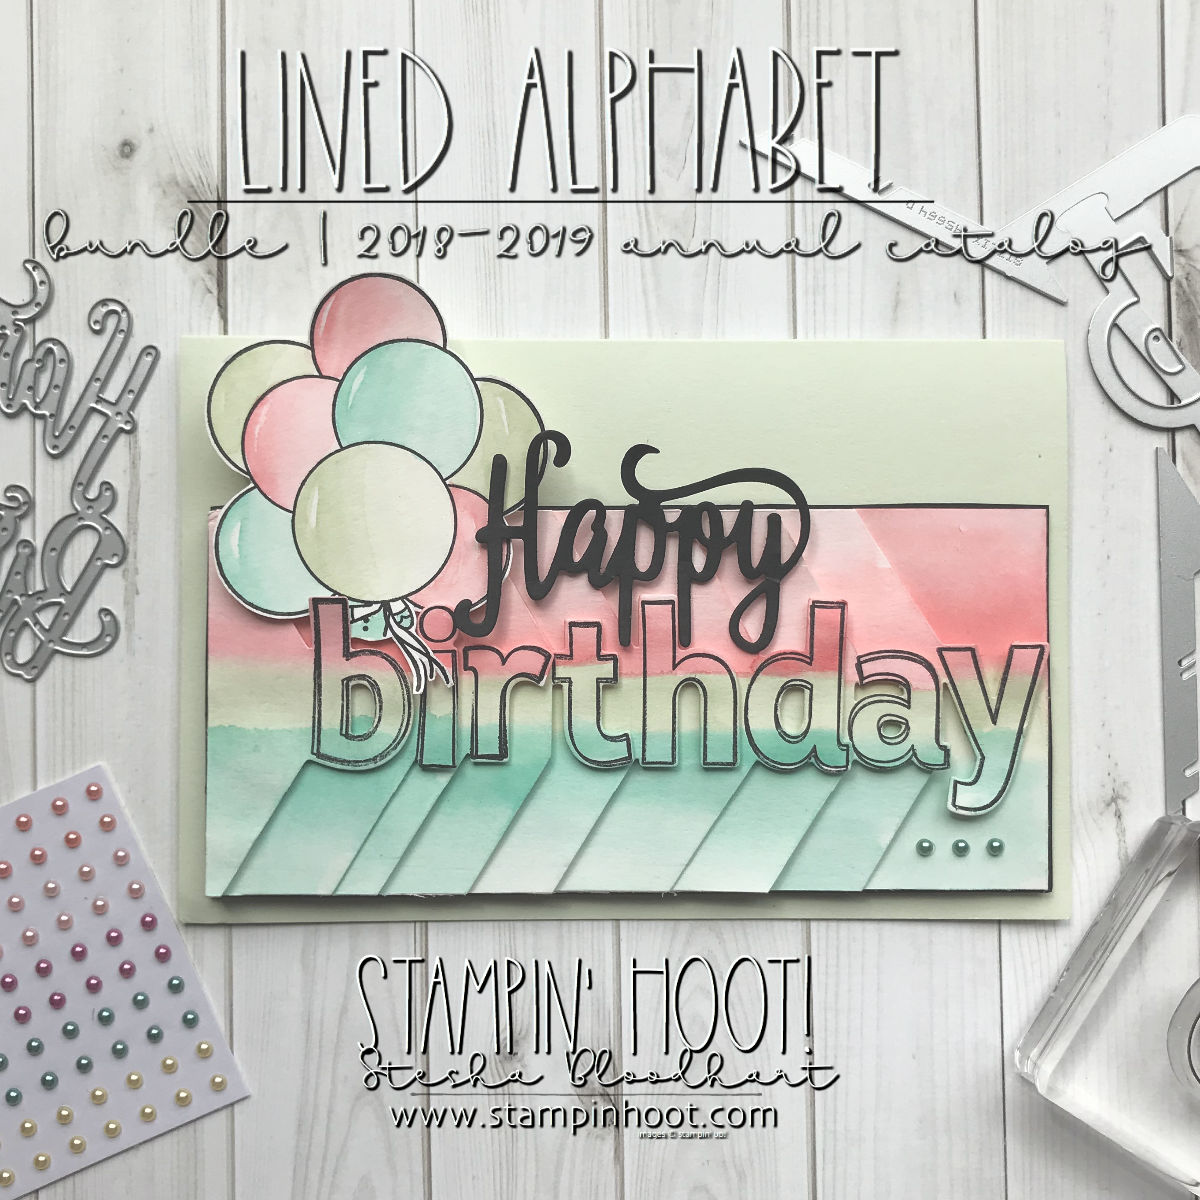 Happy Birthday Card using the Lined Alphabet Bundle by Stampin' Up! From the 2018-2019 Annual Catalog. Handmade card by Stesha Bloodhart, Stampin' Hoot! #steshabloodhart #stampinhoot